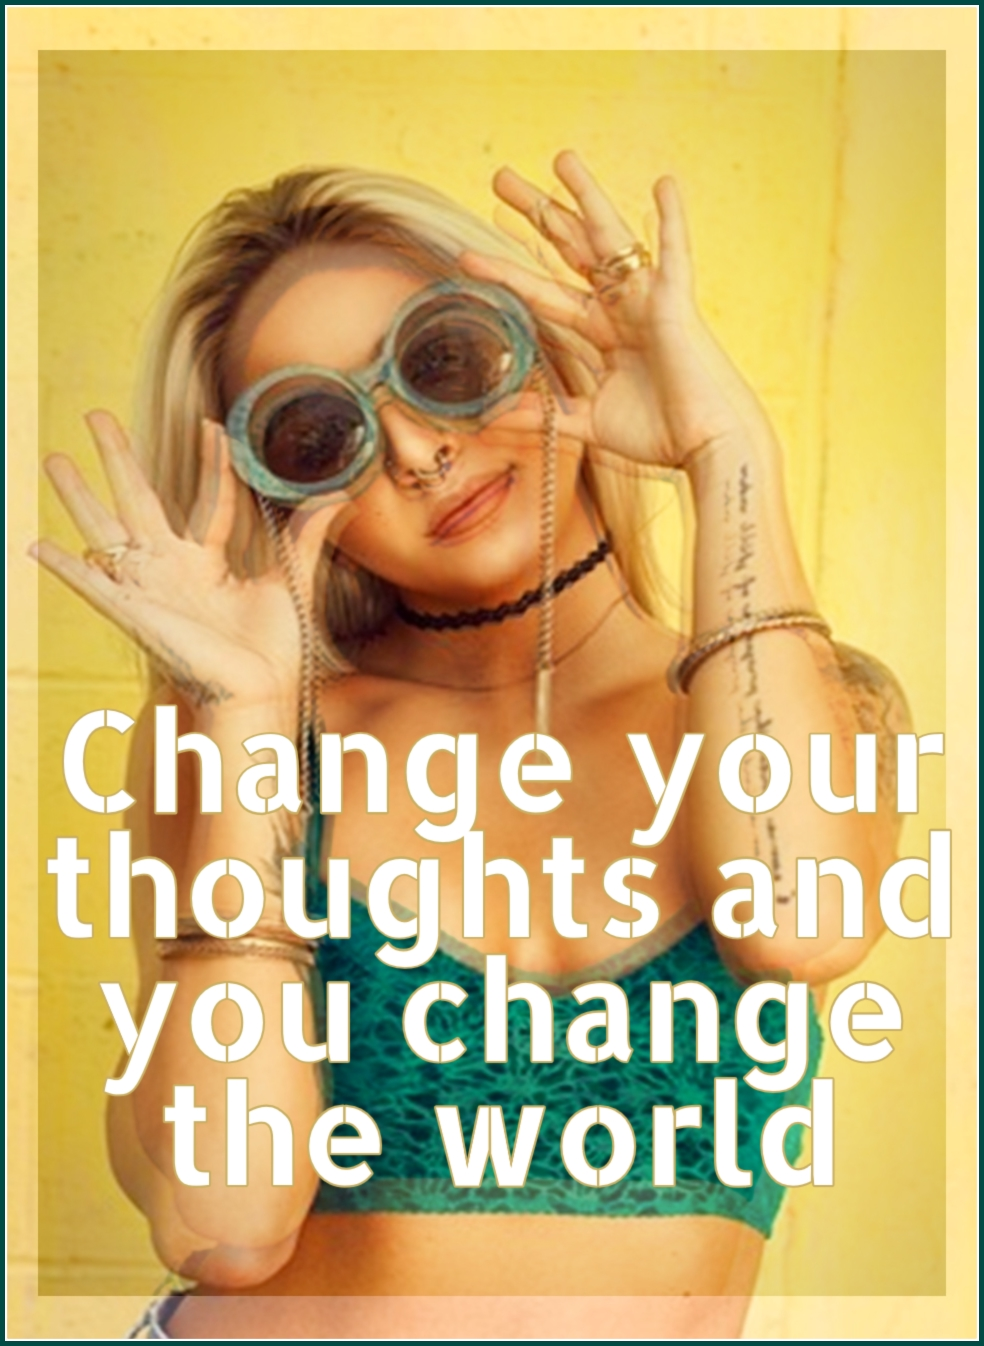 Norman Vincent Peale #quote Change your thoughts and you change the world